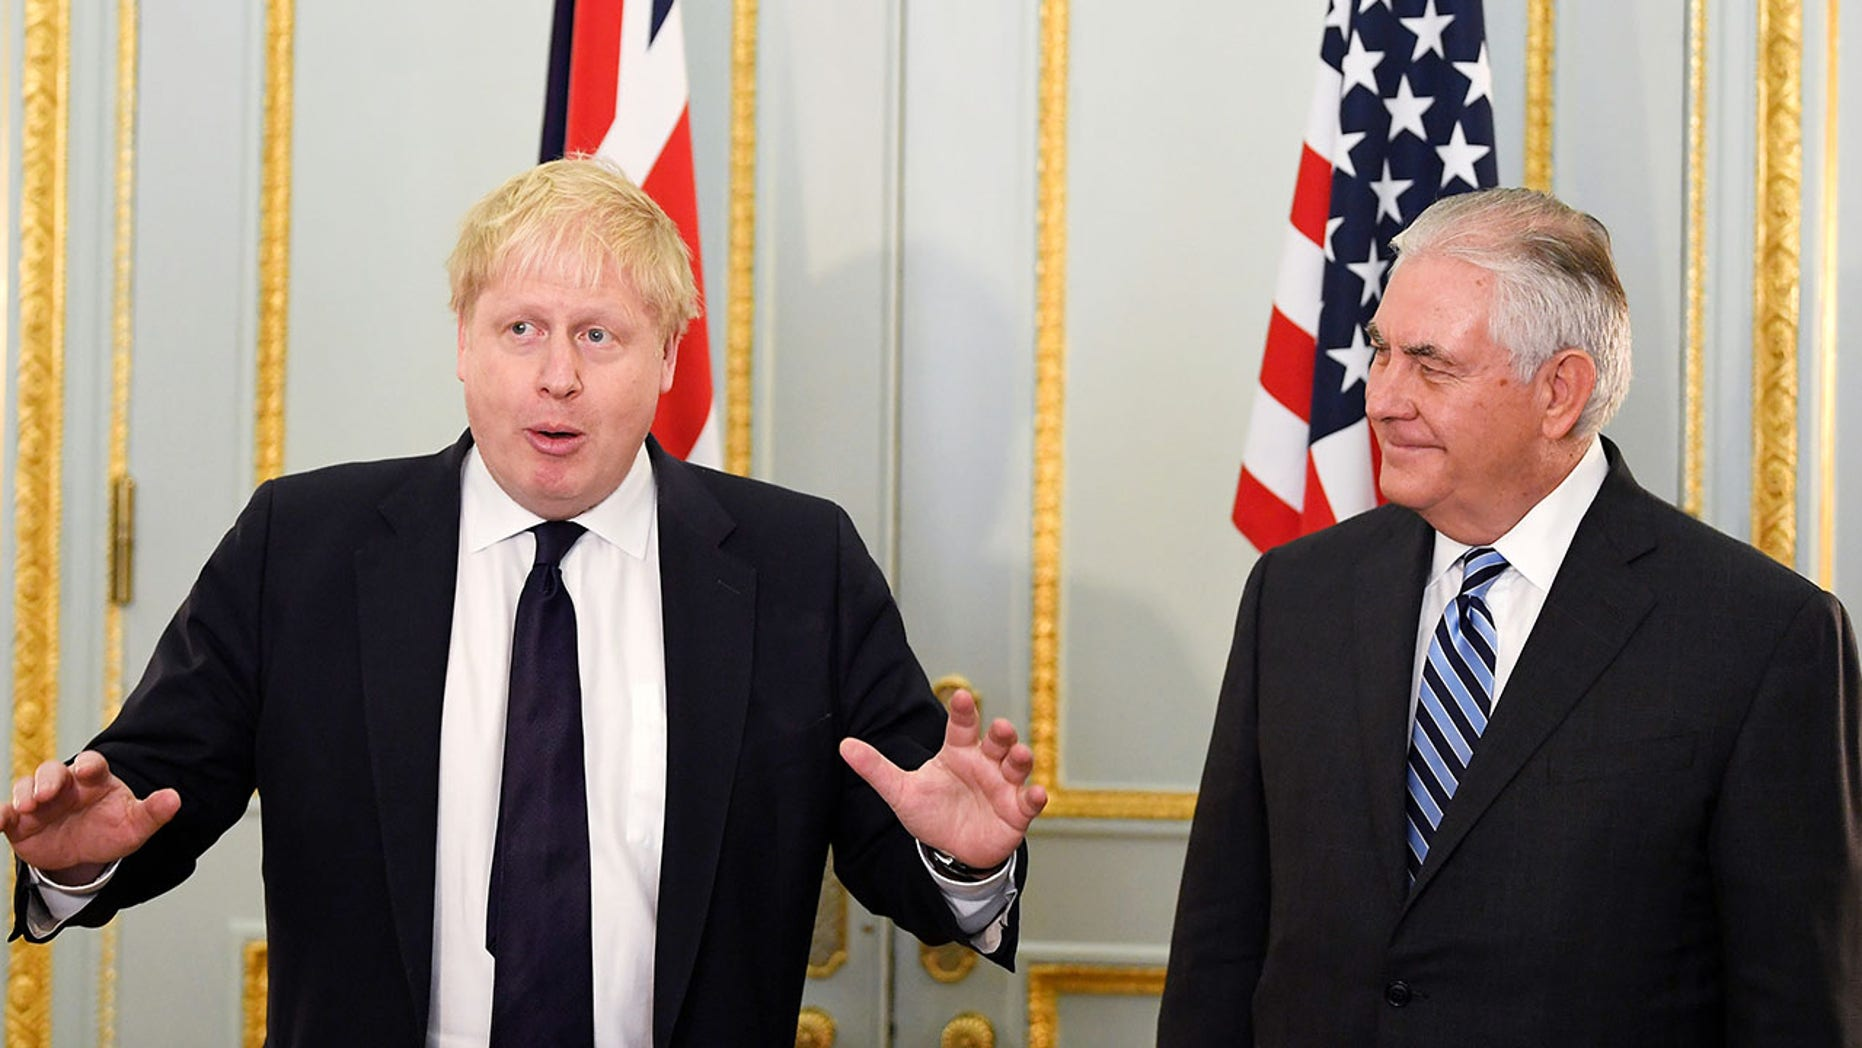 U.K. Foreign Secretary Boris Johnson greeted U.S. Secretary of State Rex Tillerson this week.